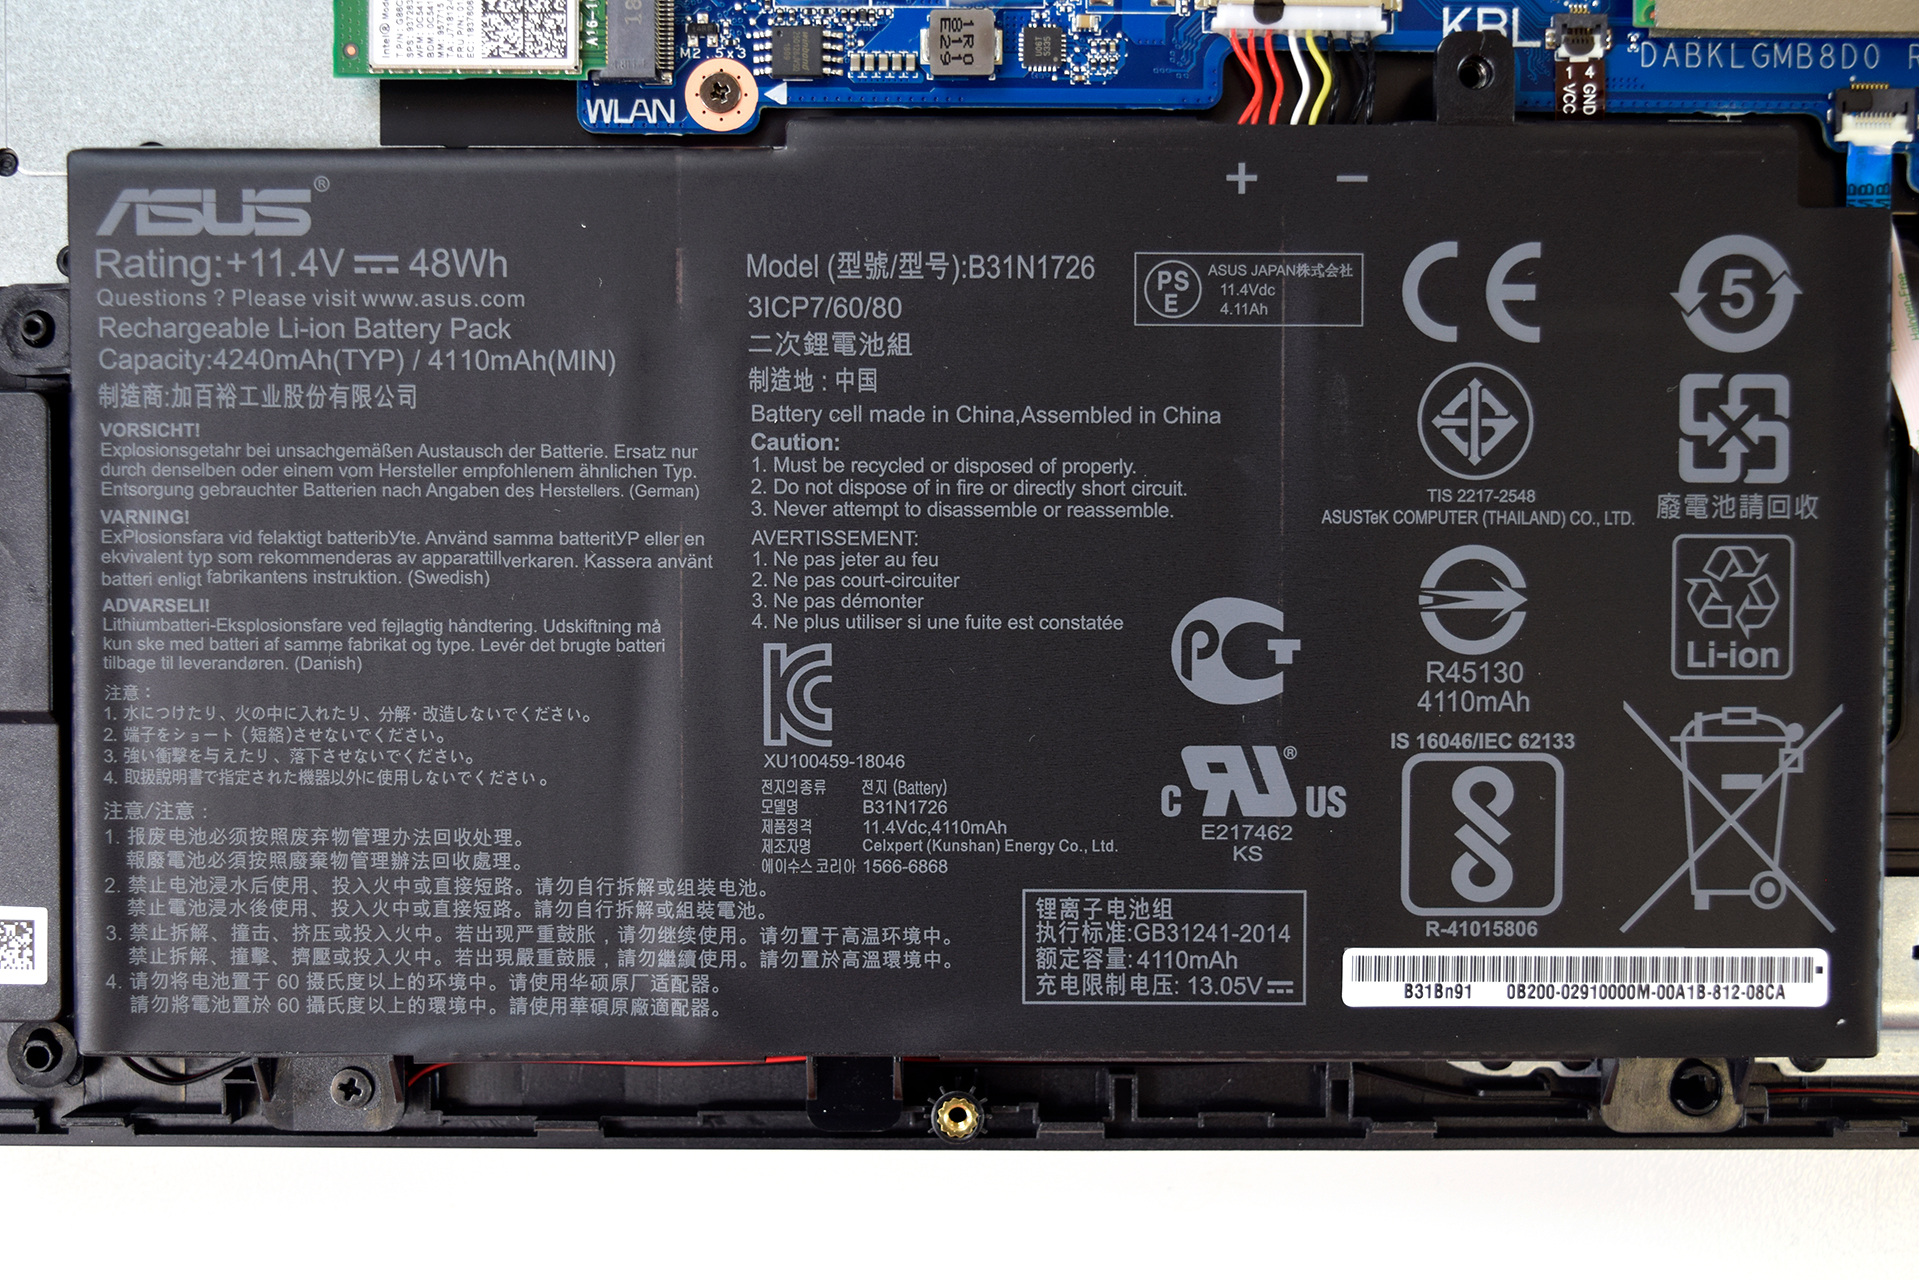 Inside ASUS TUF Gaming FX504 – disassembly, internal photos